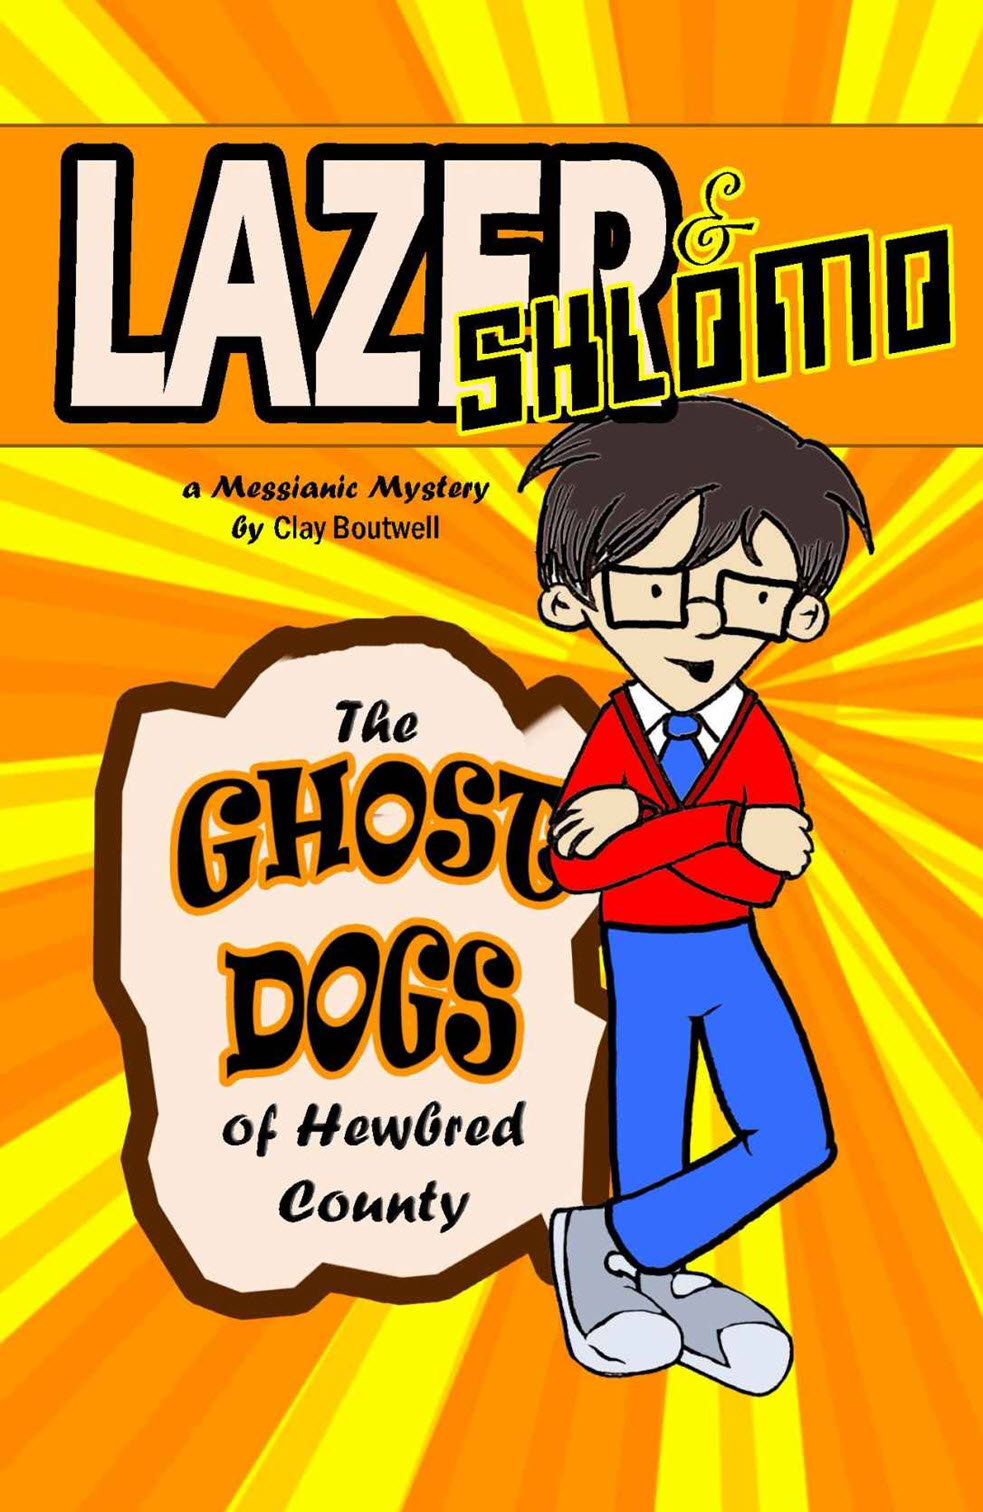 The Ghost Dogs of Hewbred County